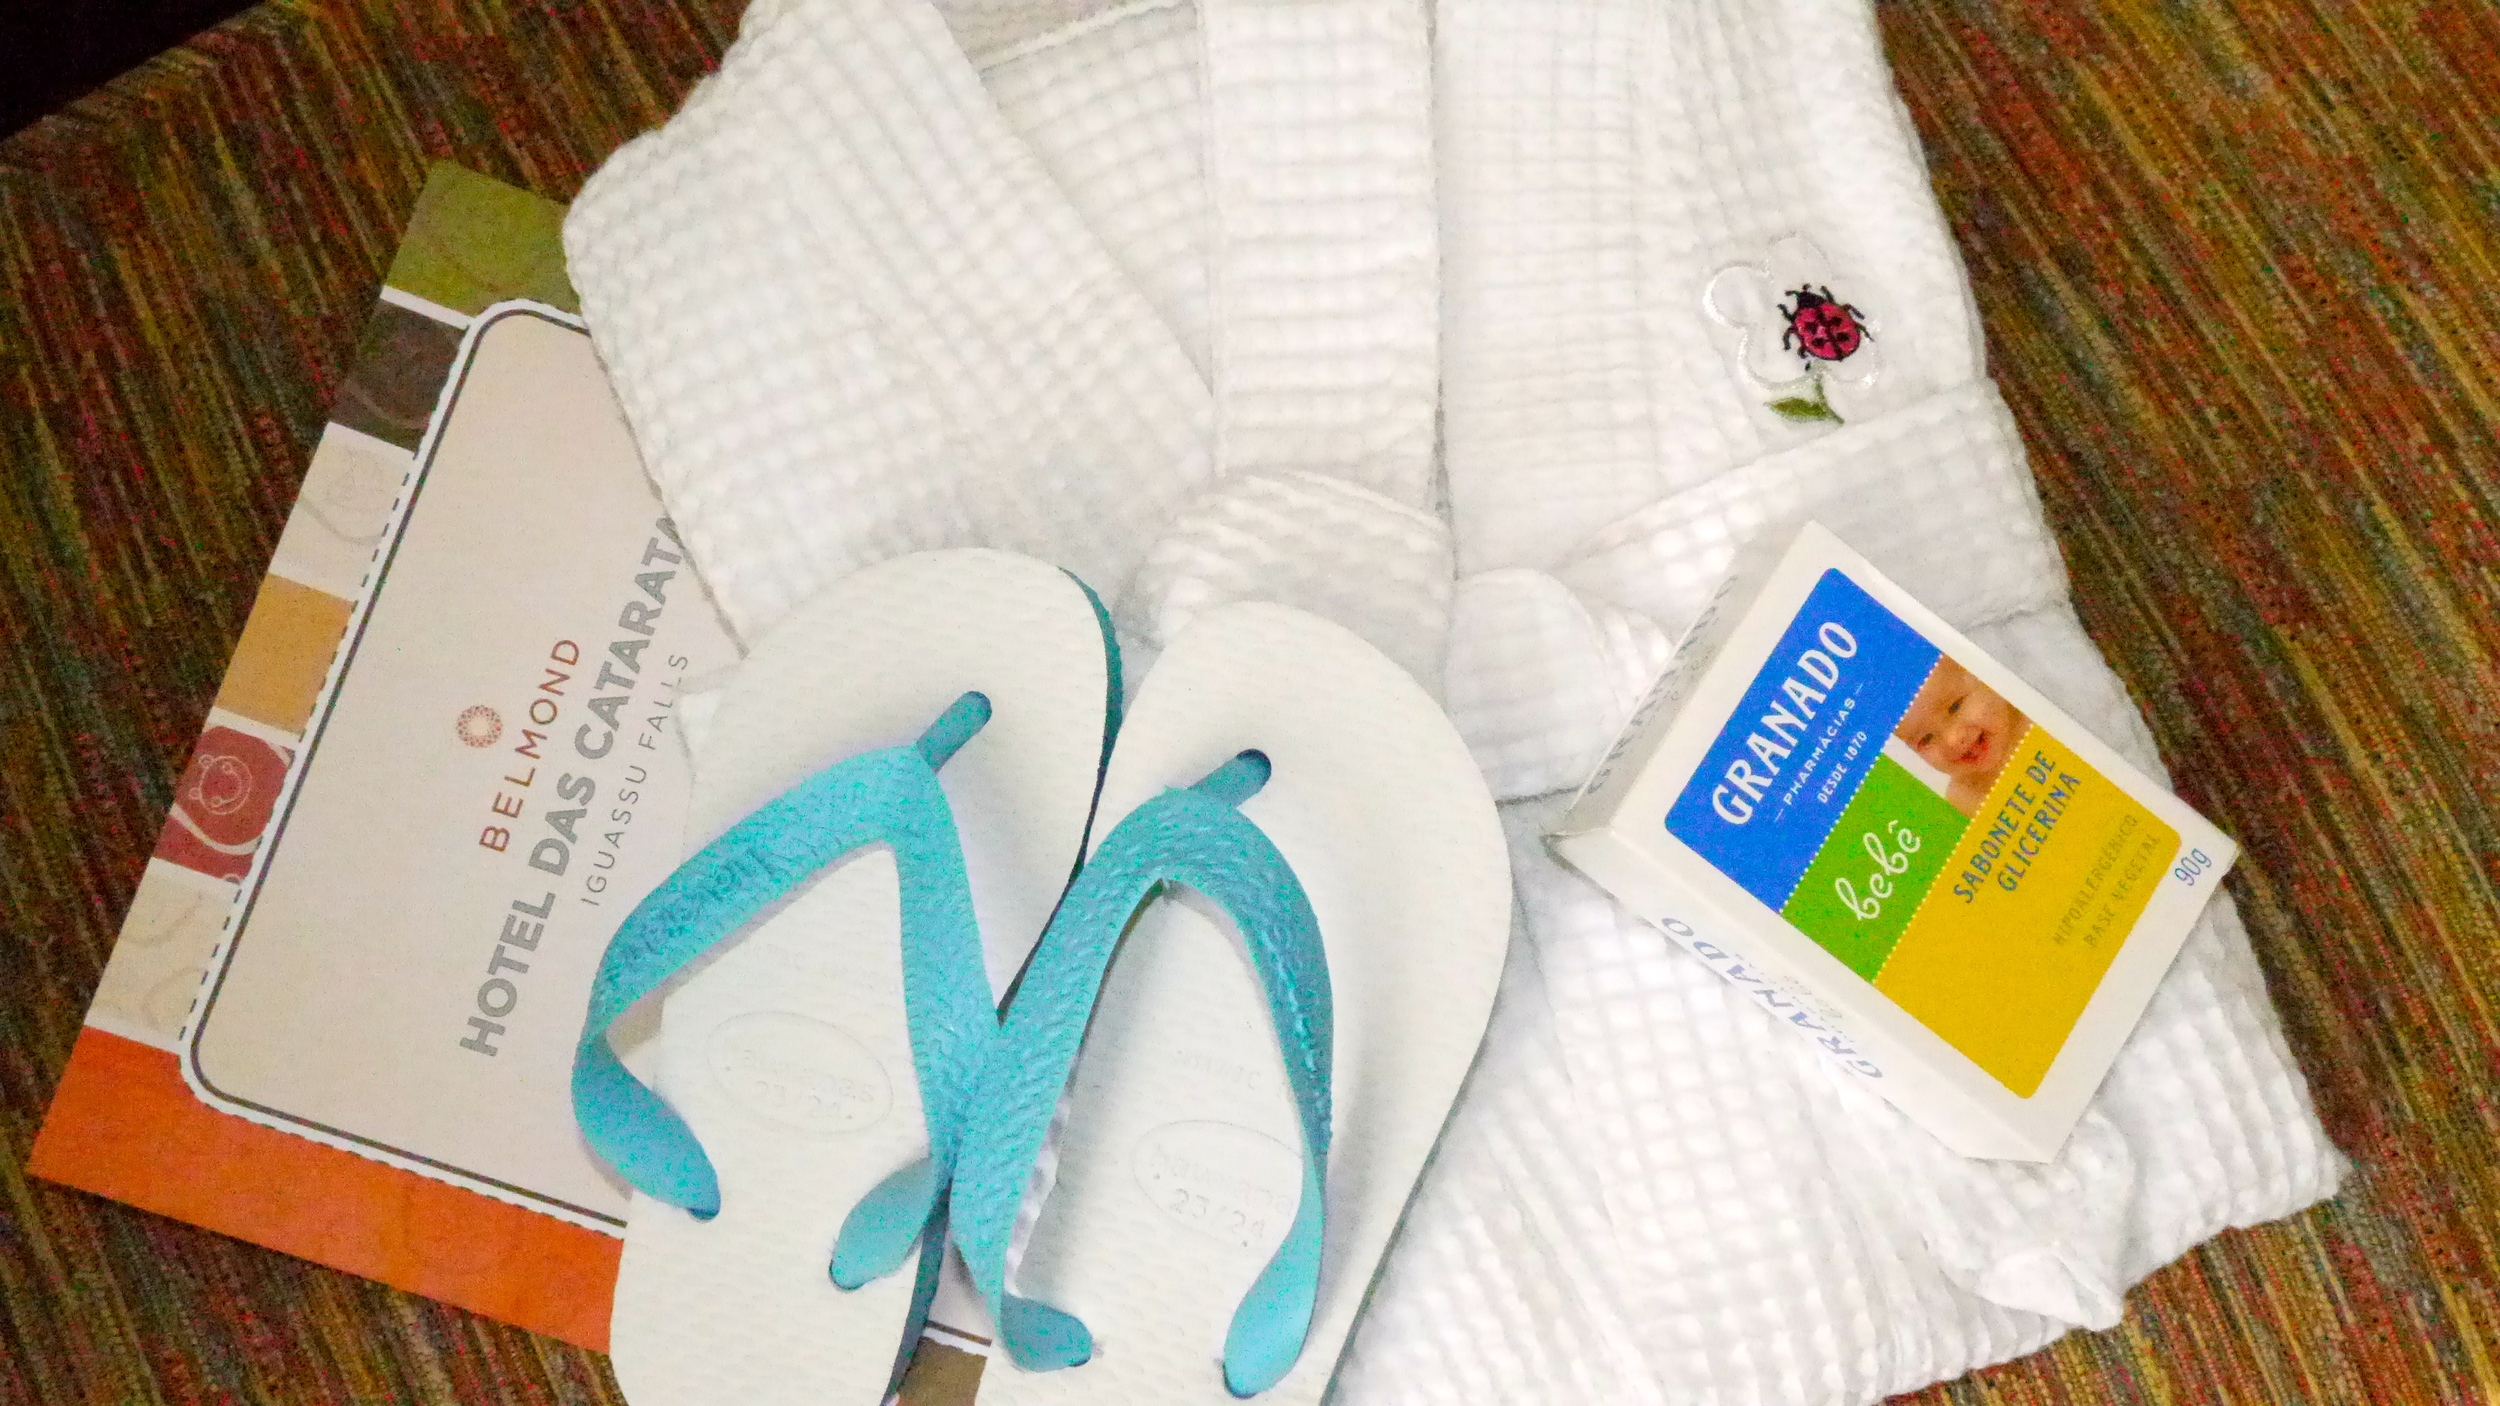 (30) Hotel das Cataratas caters to its youngest guests with kid-sized robes, Havaianas flip-flops and specialty soaps..JPG